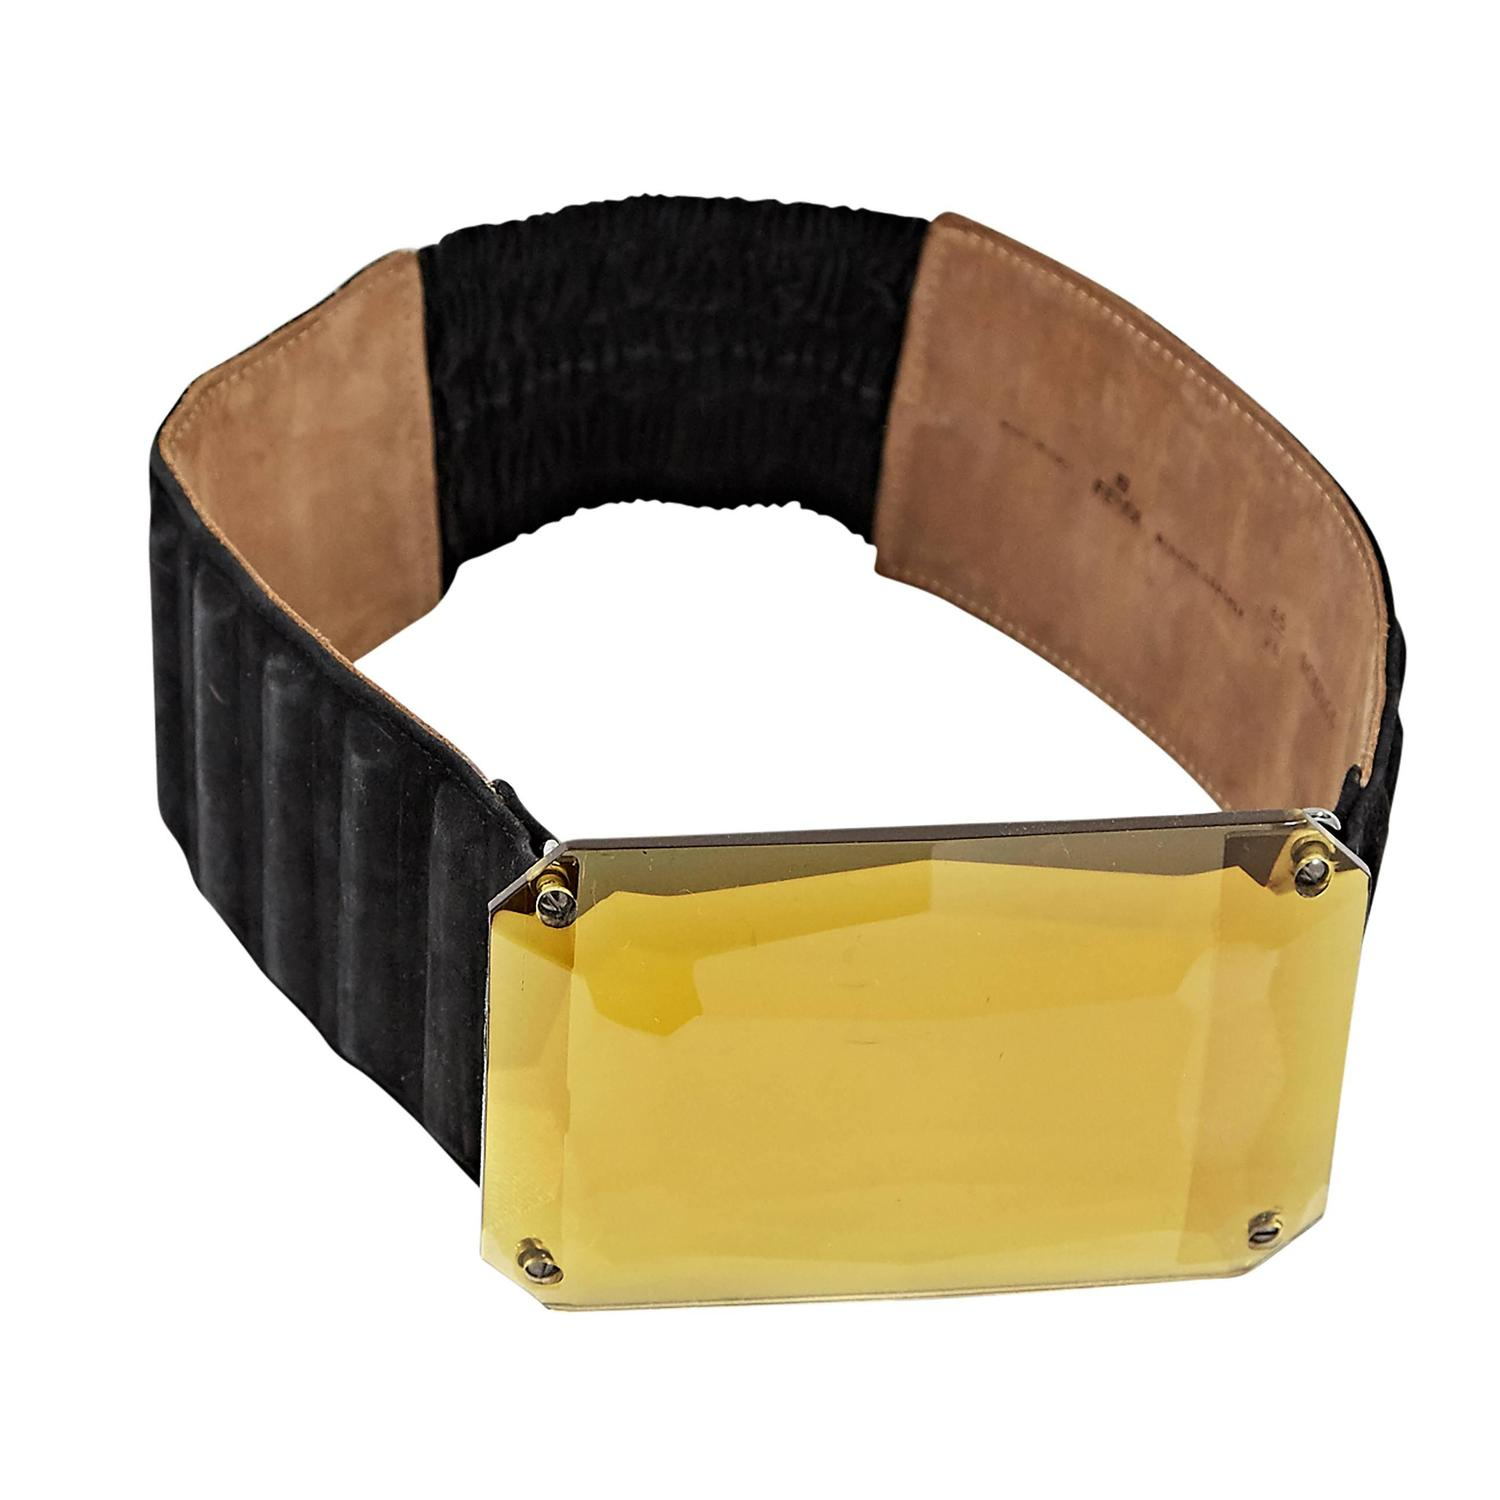 Black Fendi Suede Stretch Belt at 1stdibs